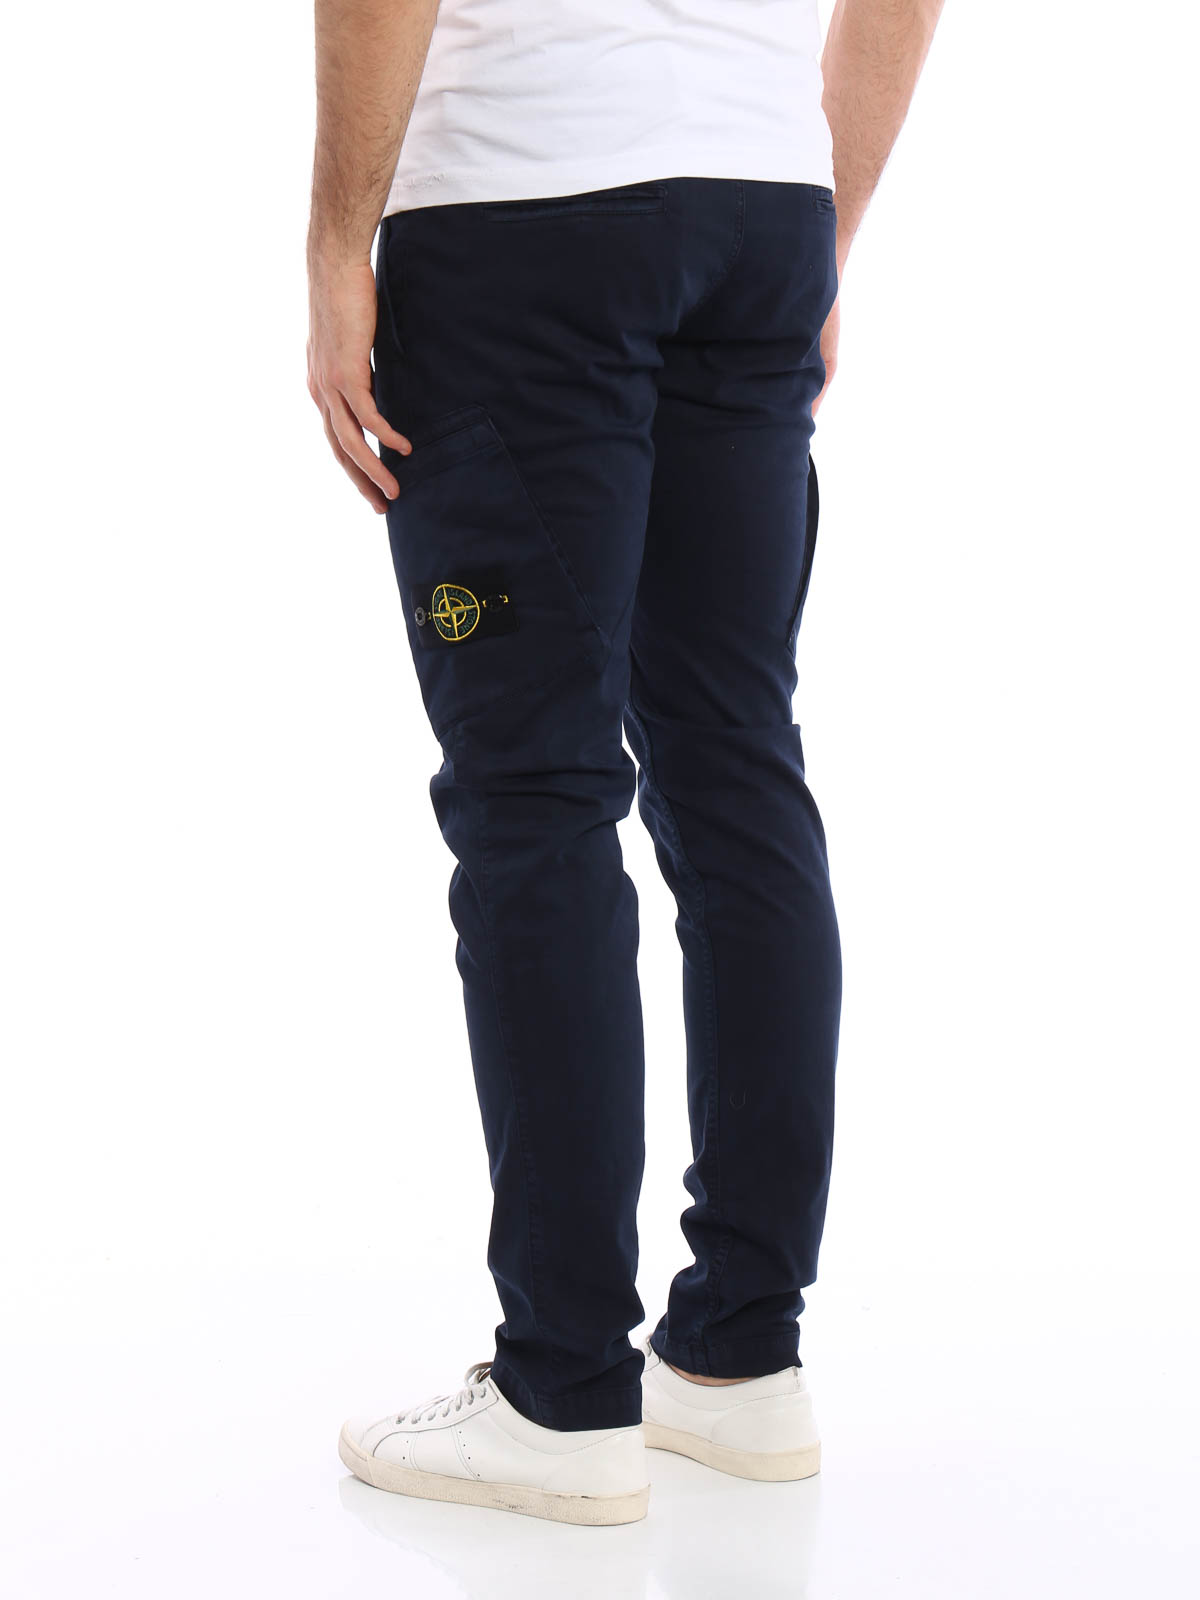 Los Angeles performance fiable pourtant pas vulgaire Stone Island - Cotton twill cargo trousers - casual trousers ...